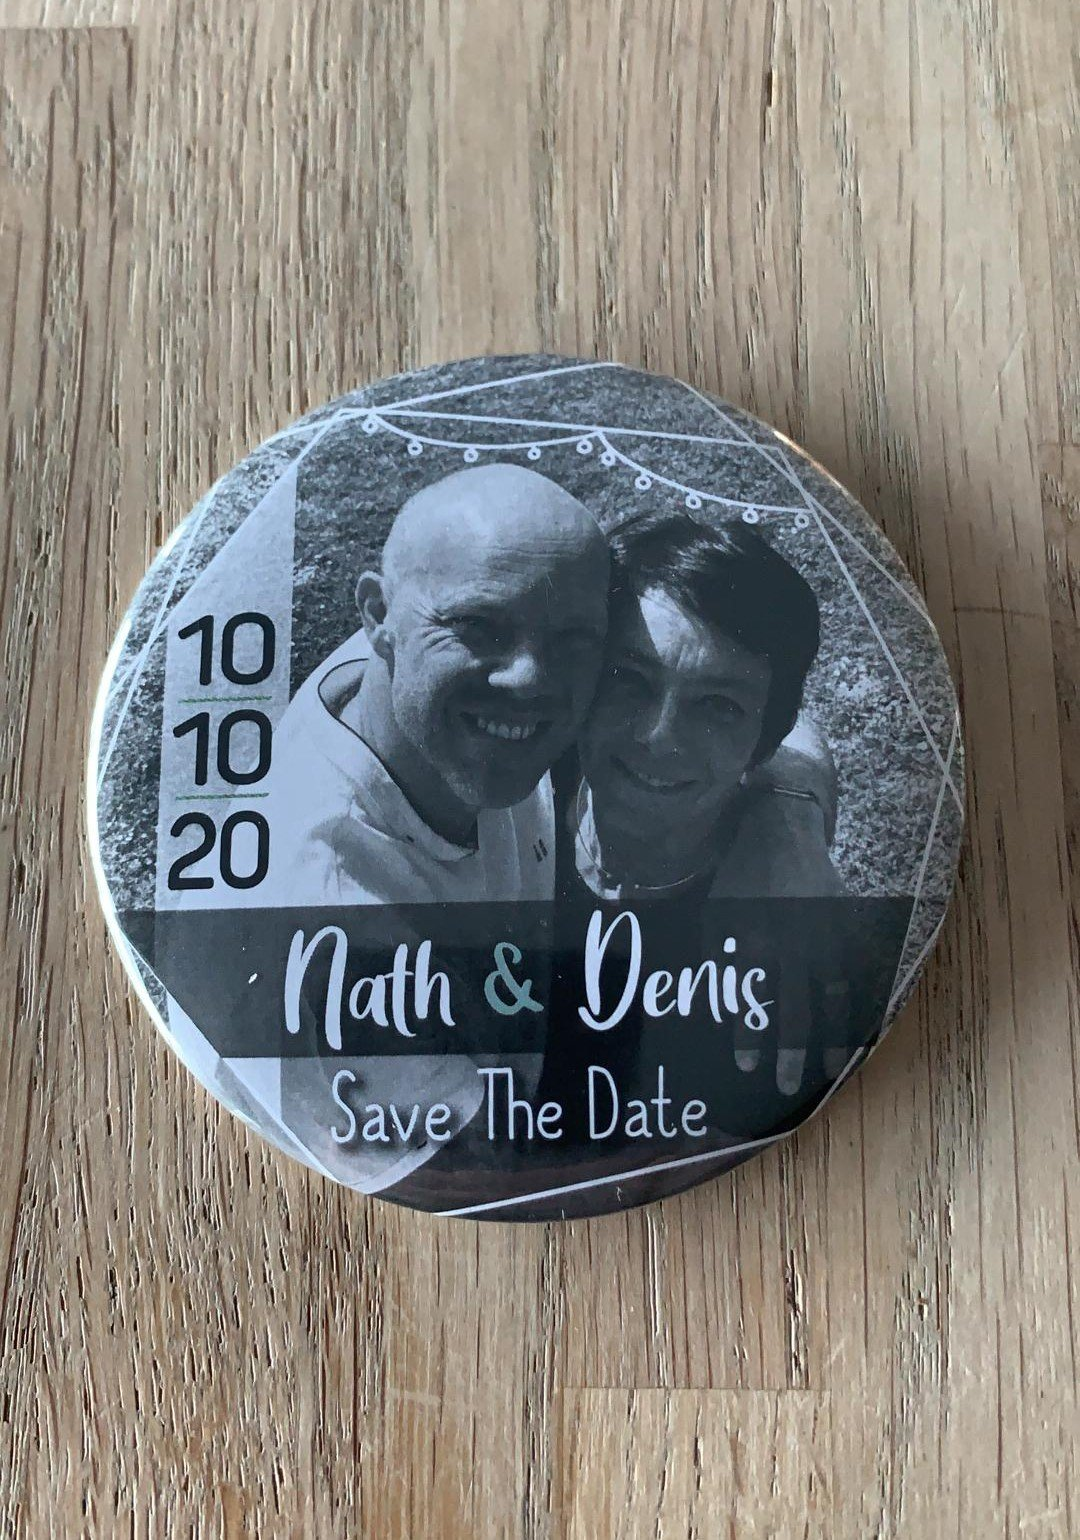 creativevent wedding planner badge save the date